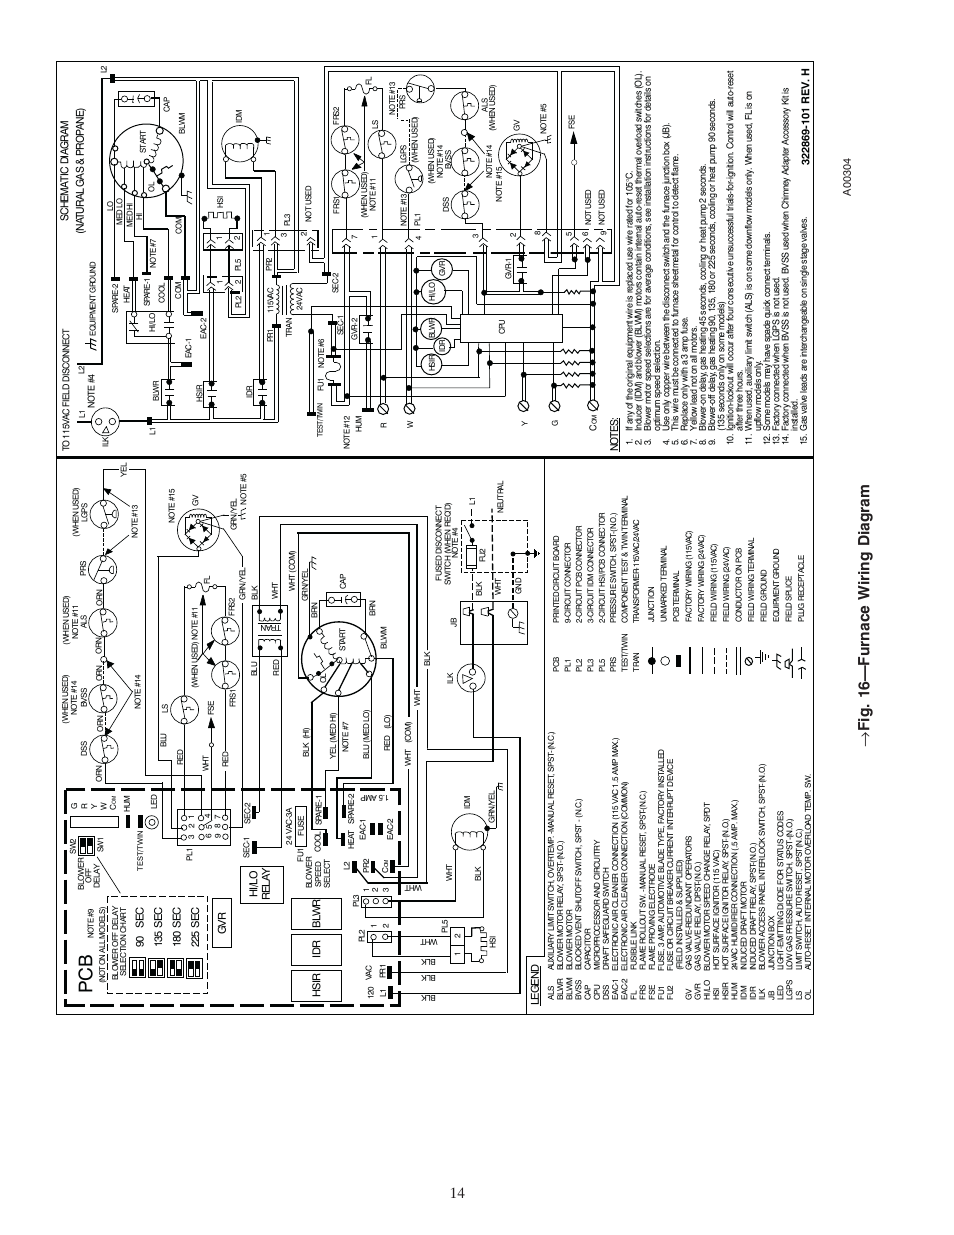 Carrier Wiring Schematic Just Another Diagram Blog Heat Pump Fig 16 Furnace Weathermaker 8000 58zav Rh Manualsdir Com